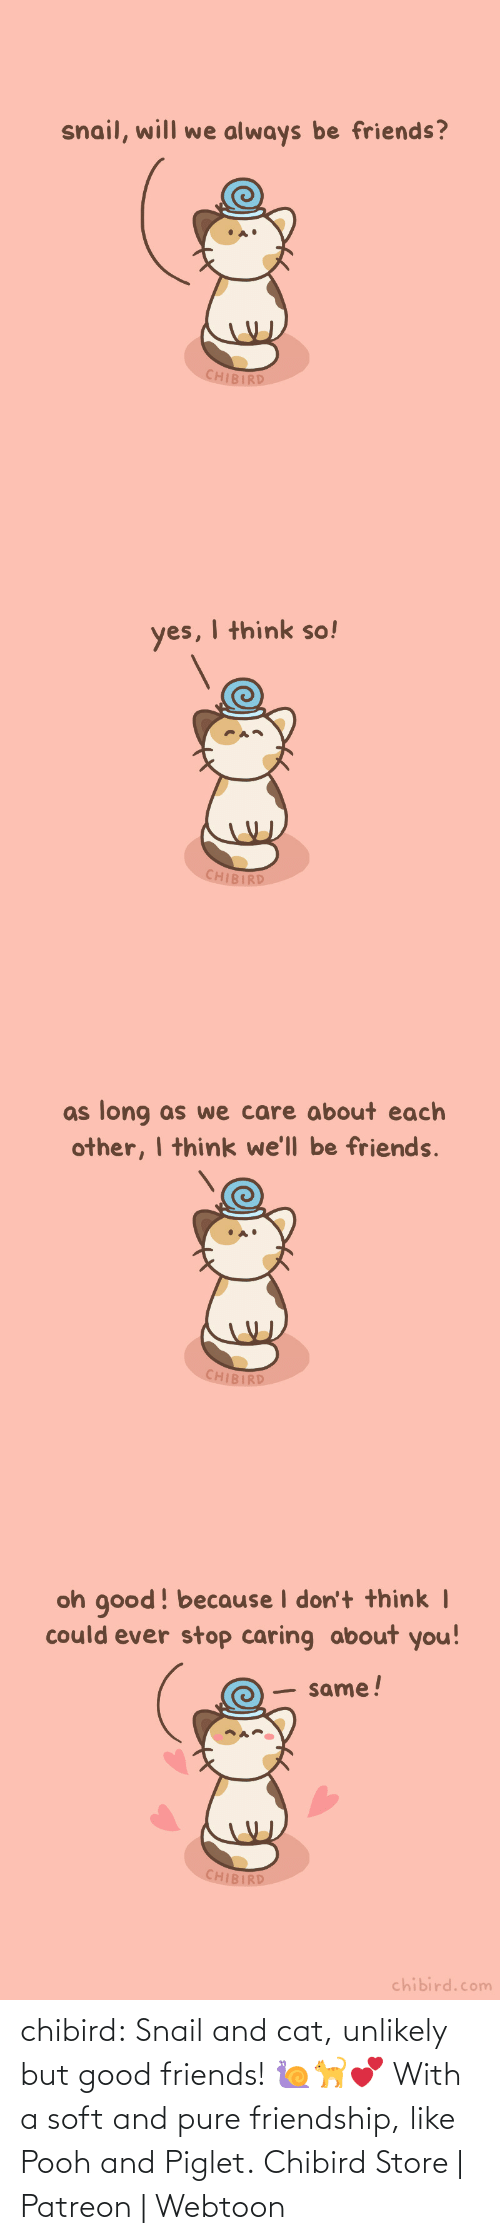 hurts: chibird:  Snail and cat, unlikely but good friends! 🐌🐈💕 With a soft and pure friendship, like Pooh and Piglet.  Chibird Store | Patreon | Webtoon